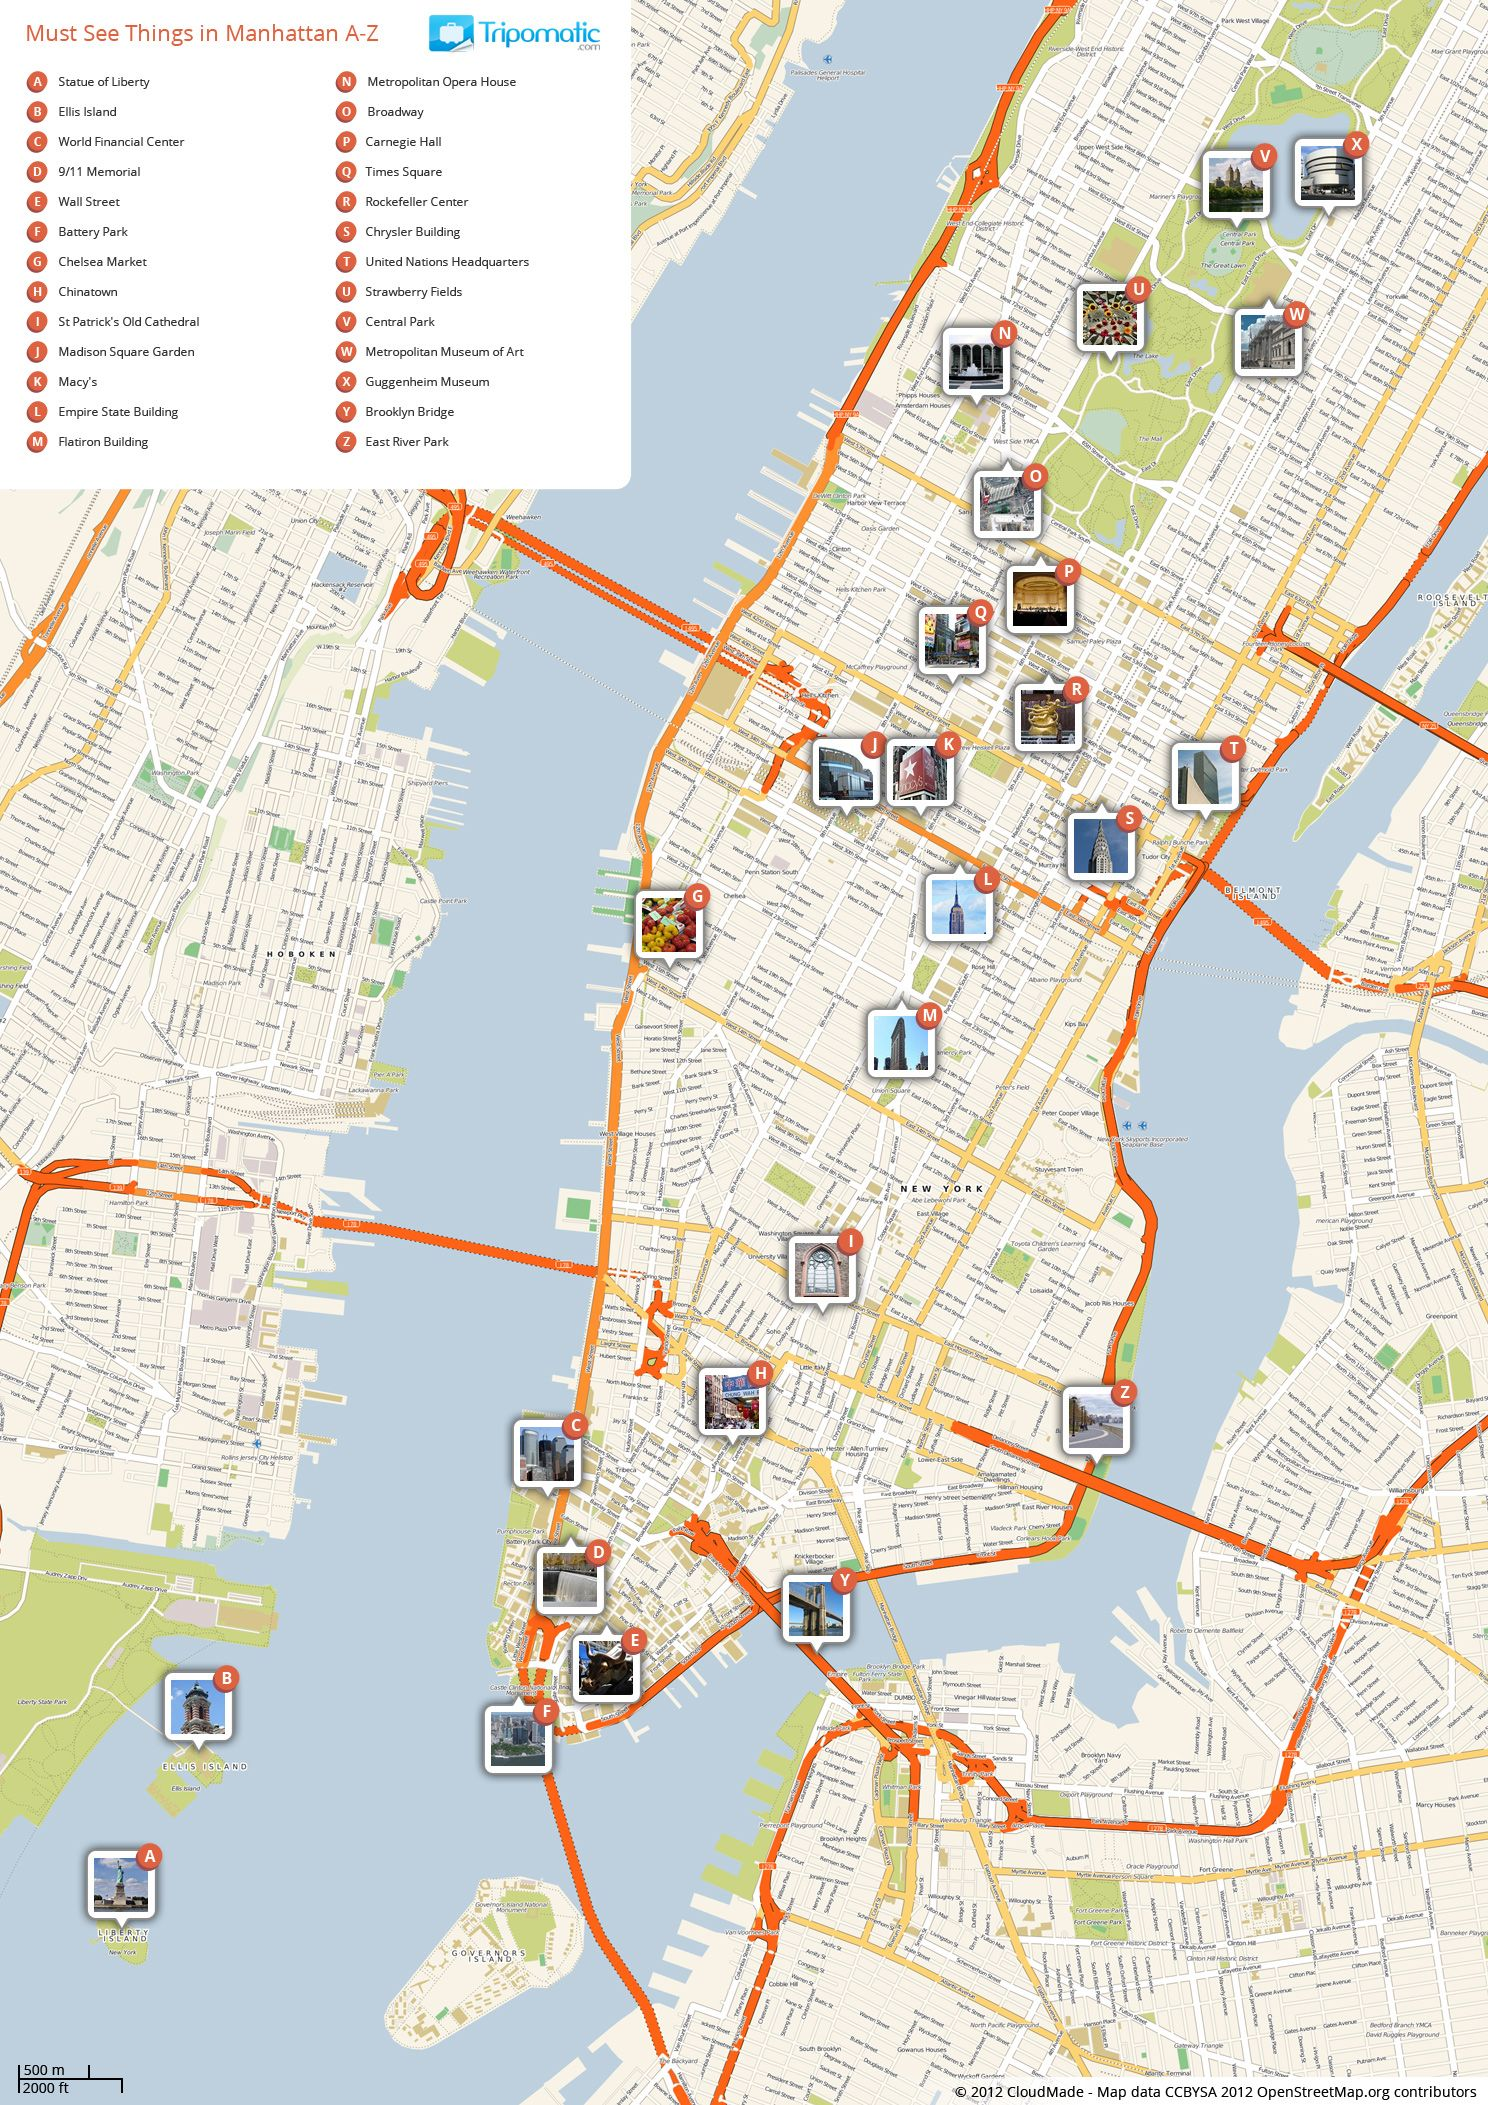 map of new york attractions tripomaticcom